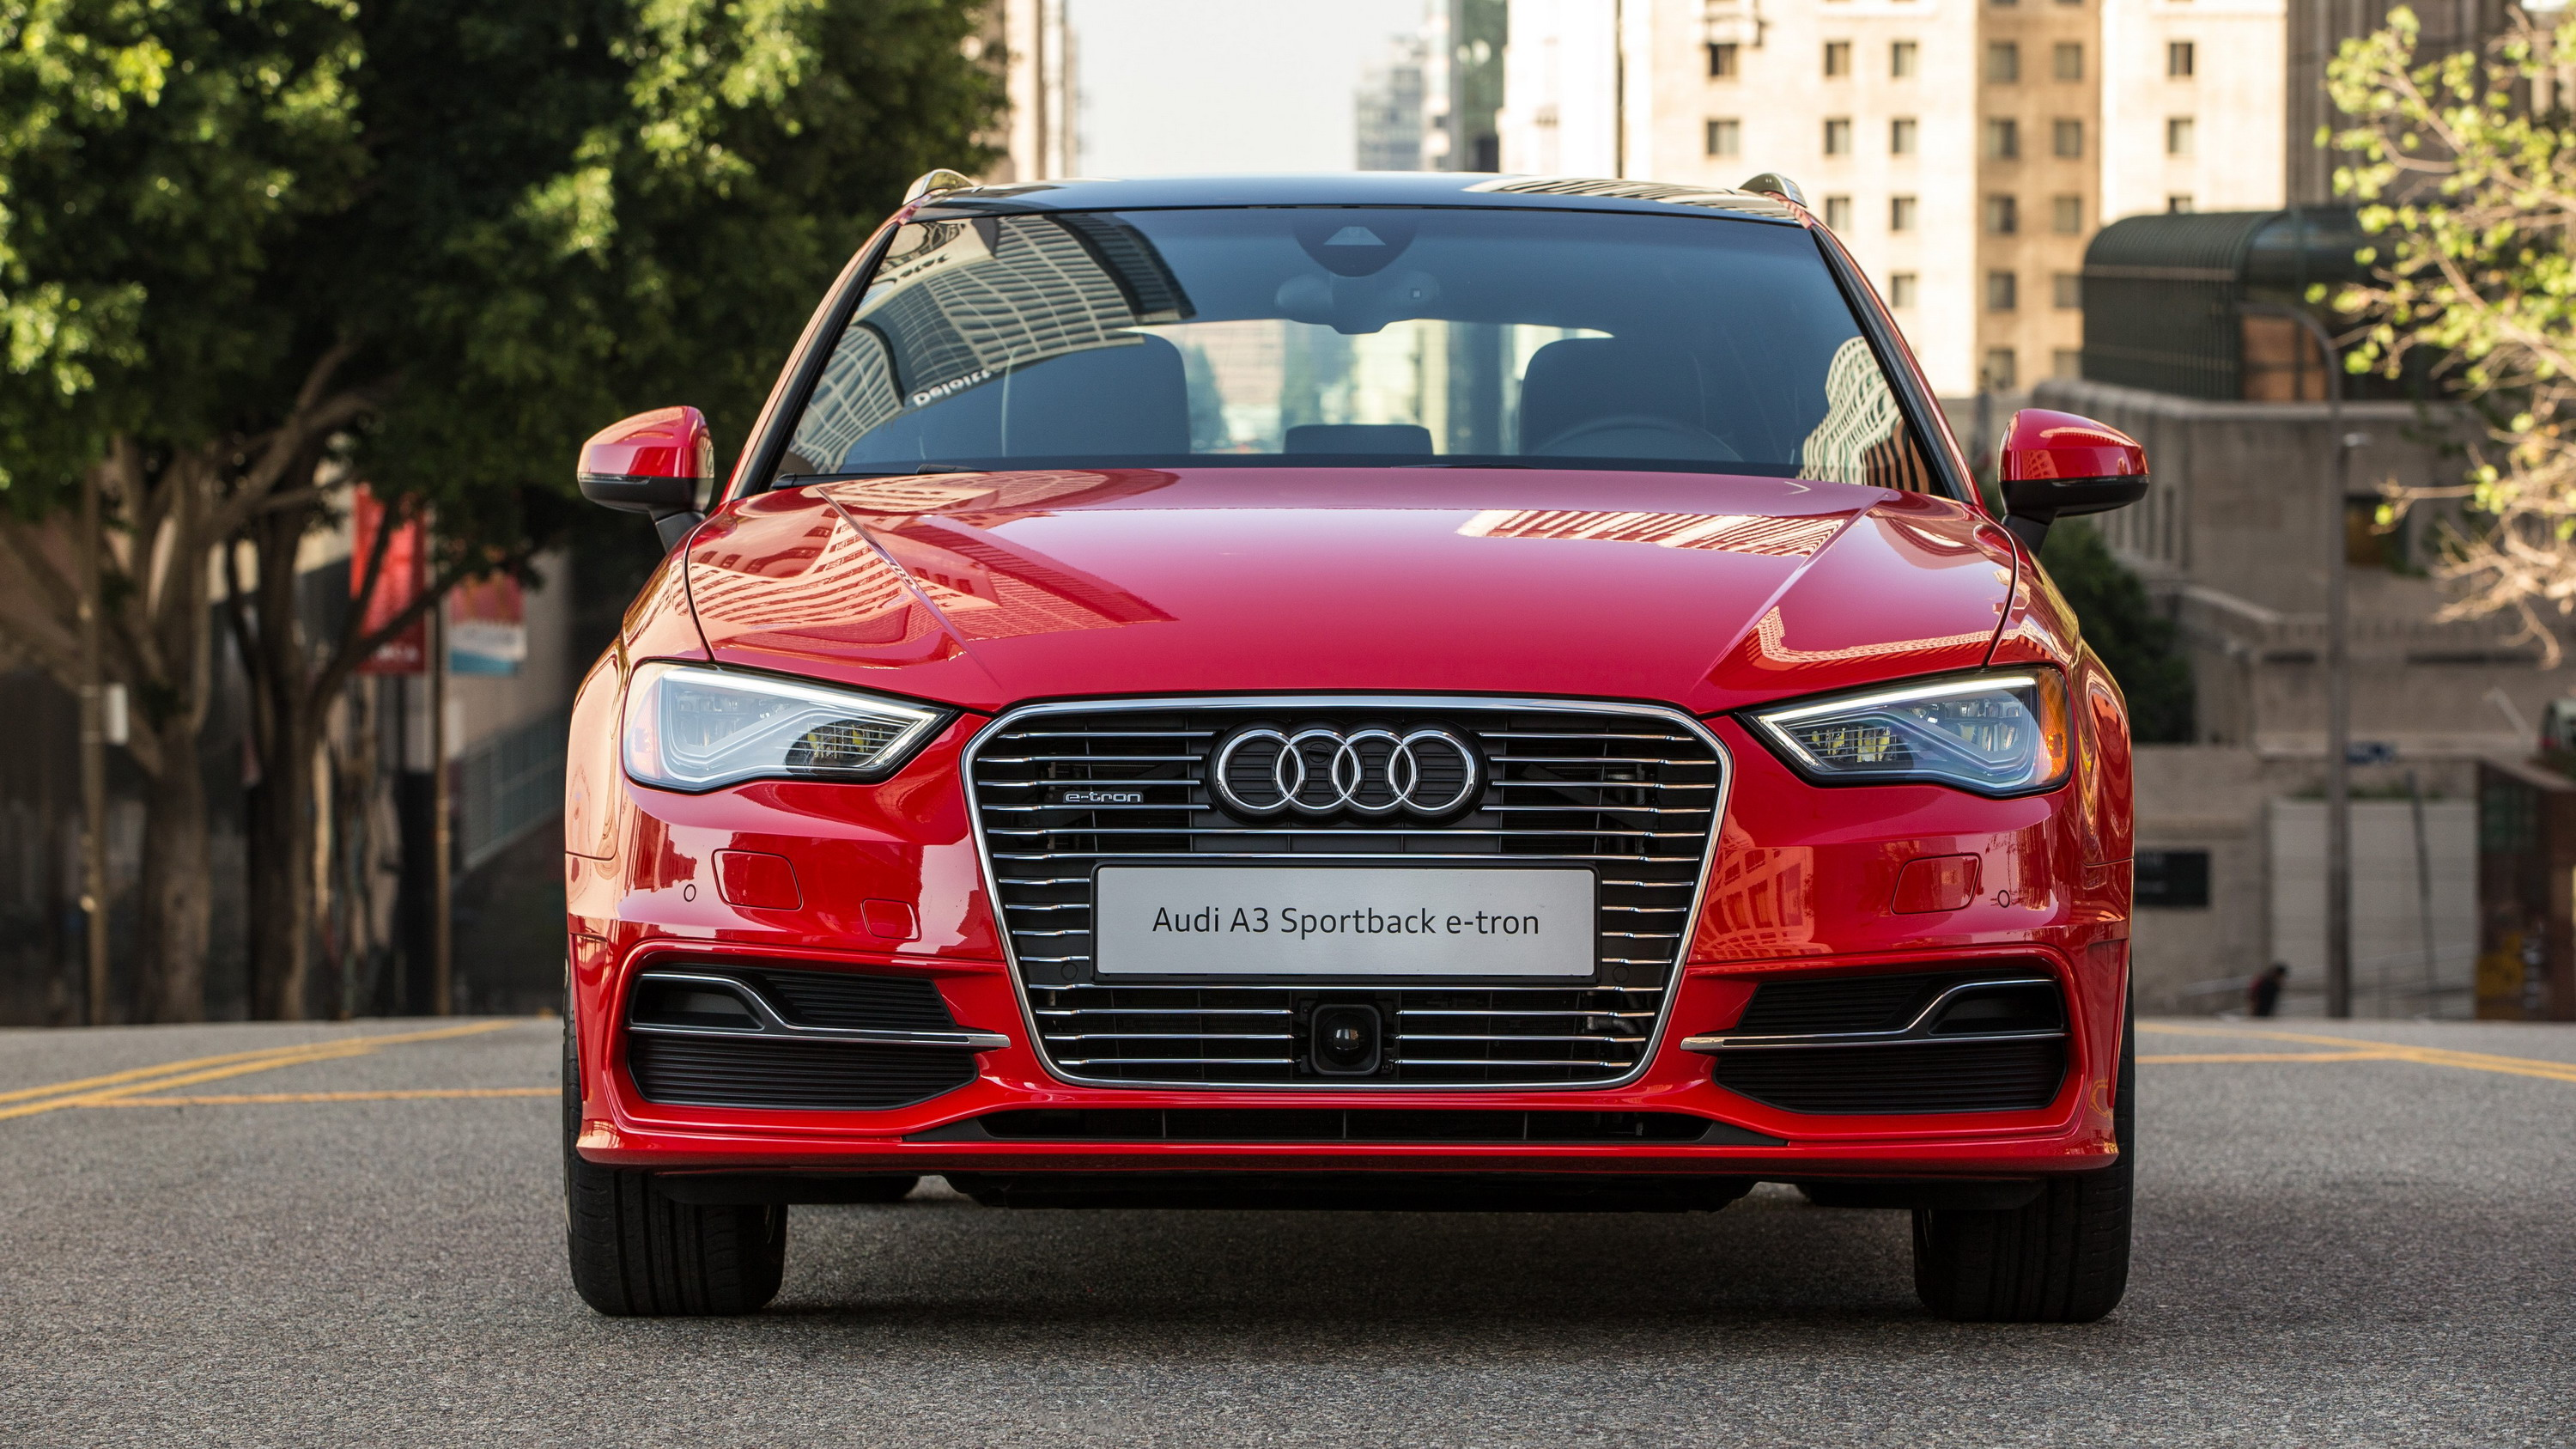 review speed saloon engine line dsc model diesel index driver audi edition tronic drive transmission min front tested automatic price s and wheel